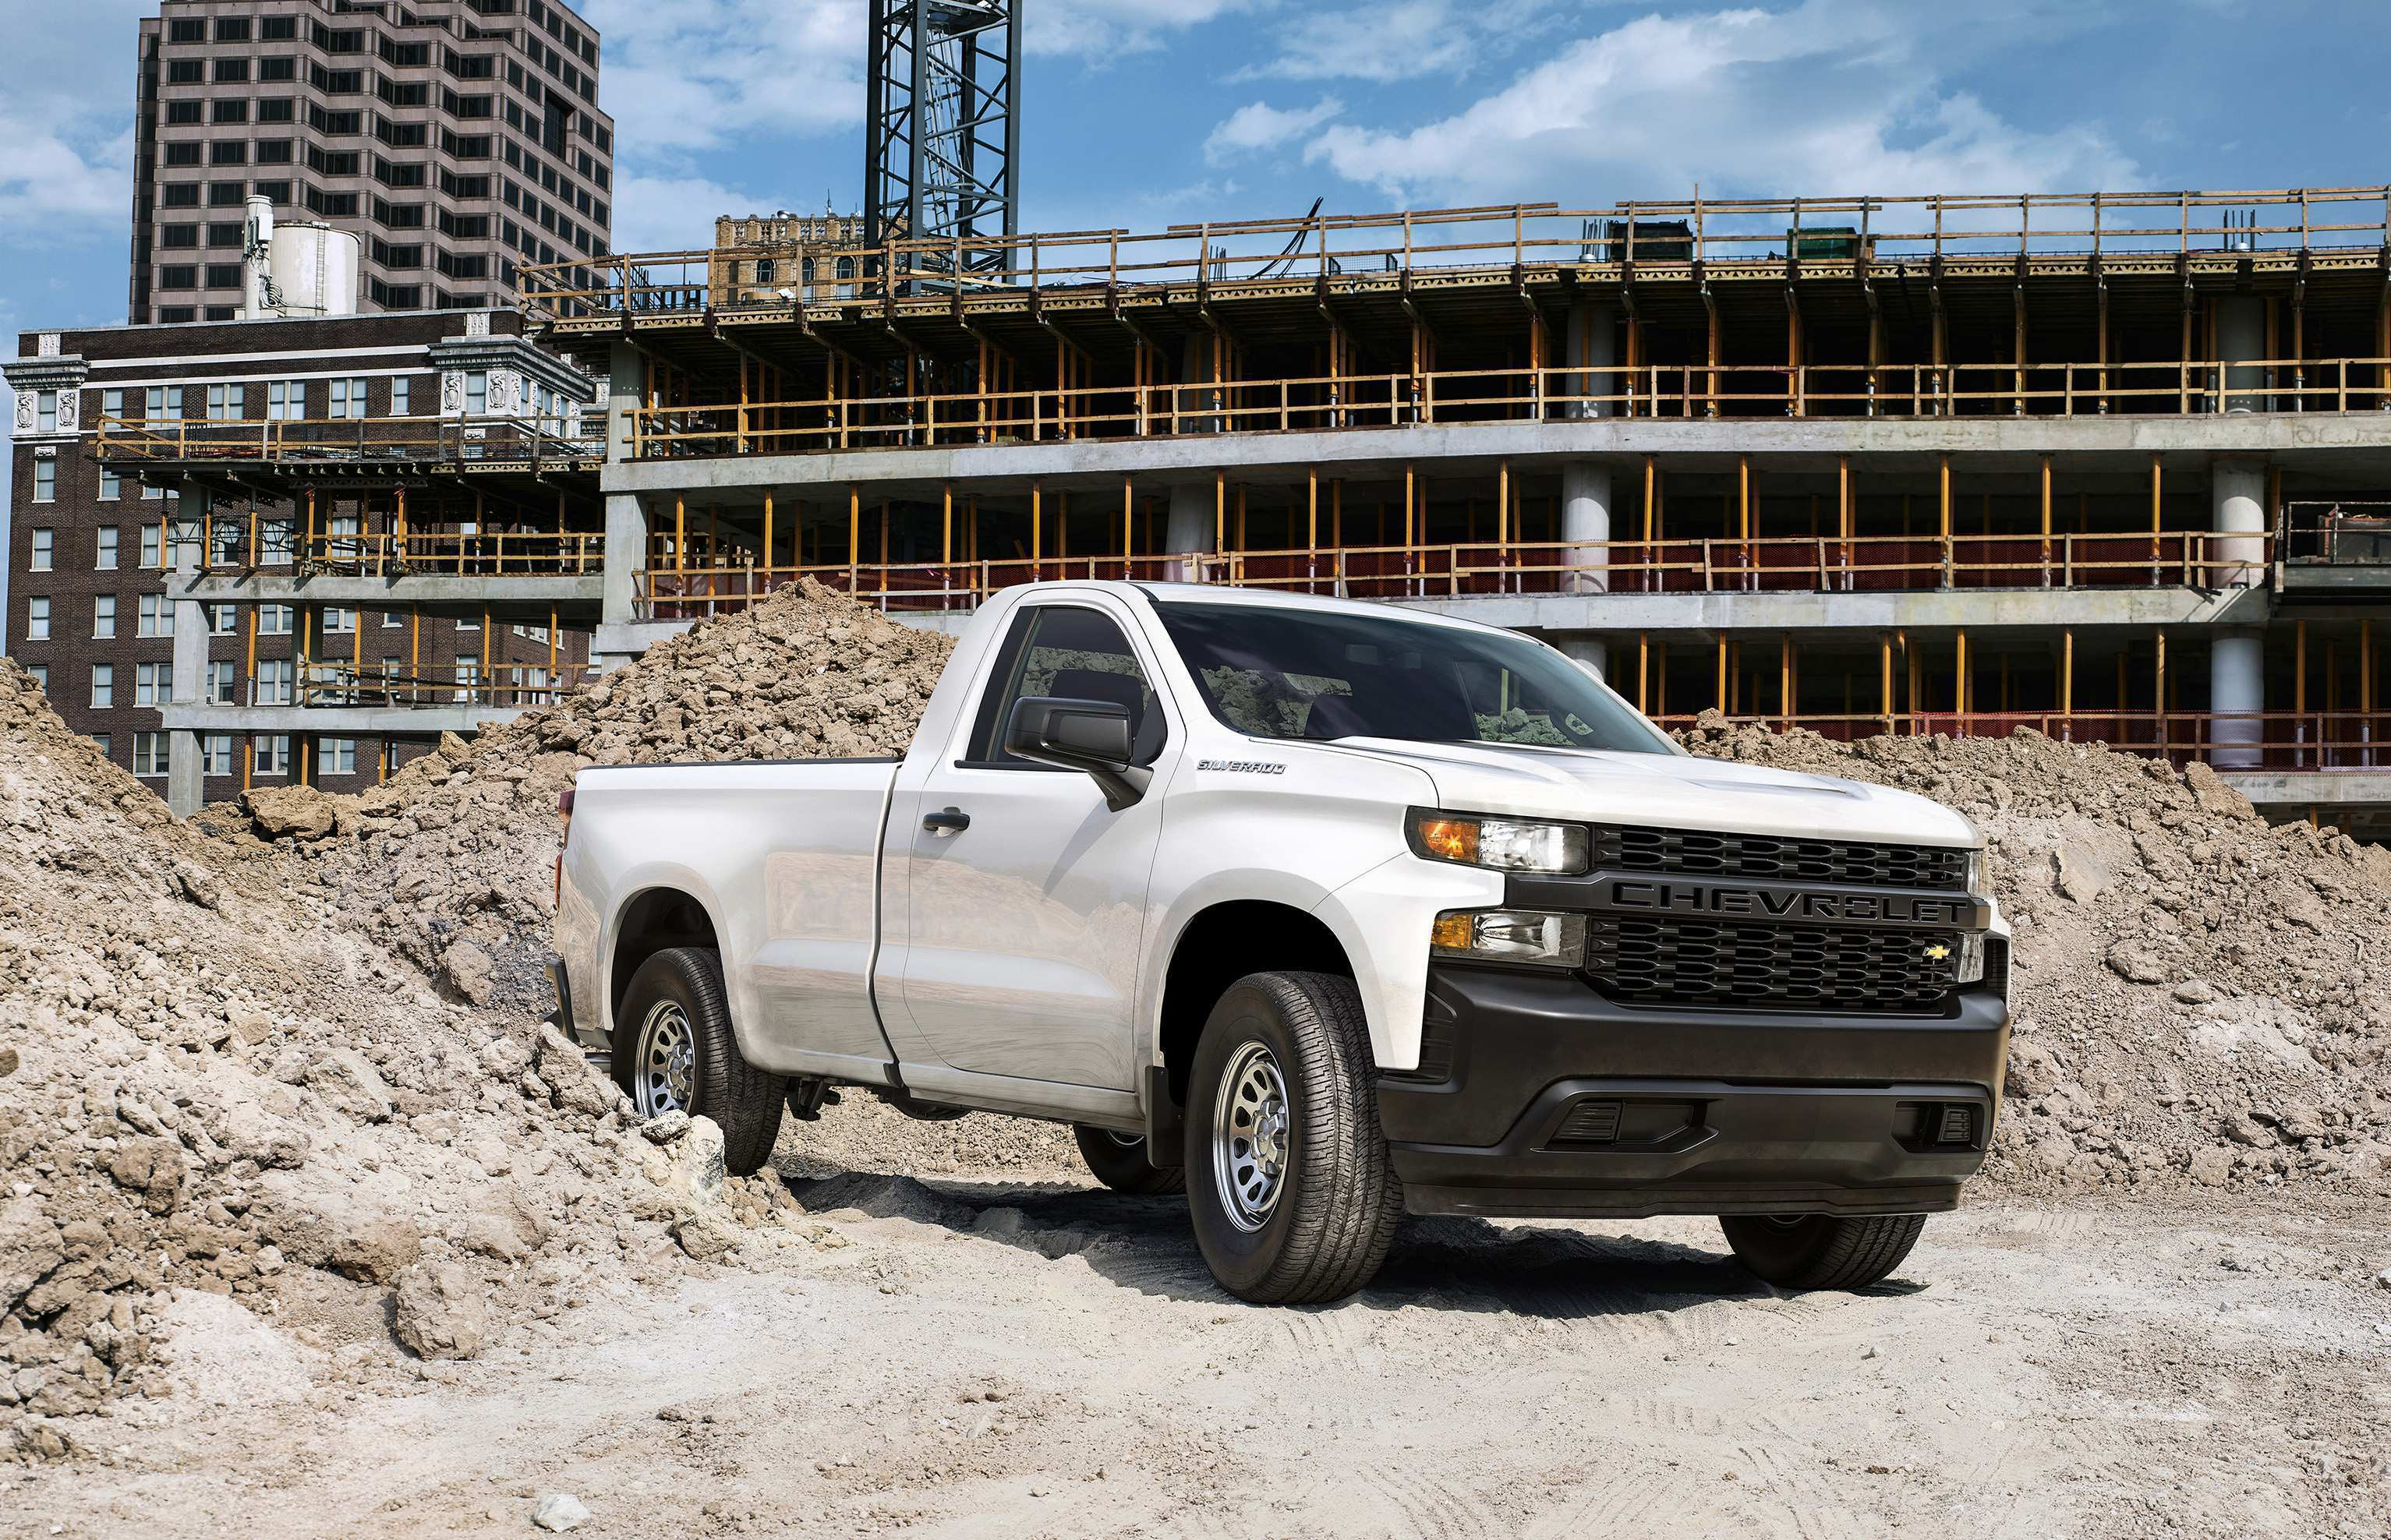 76 Concept of 2020 Chevy Silverado Hd Picture with 2020 Chevy Silverado Hd